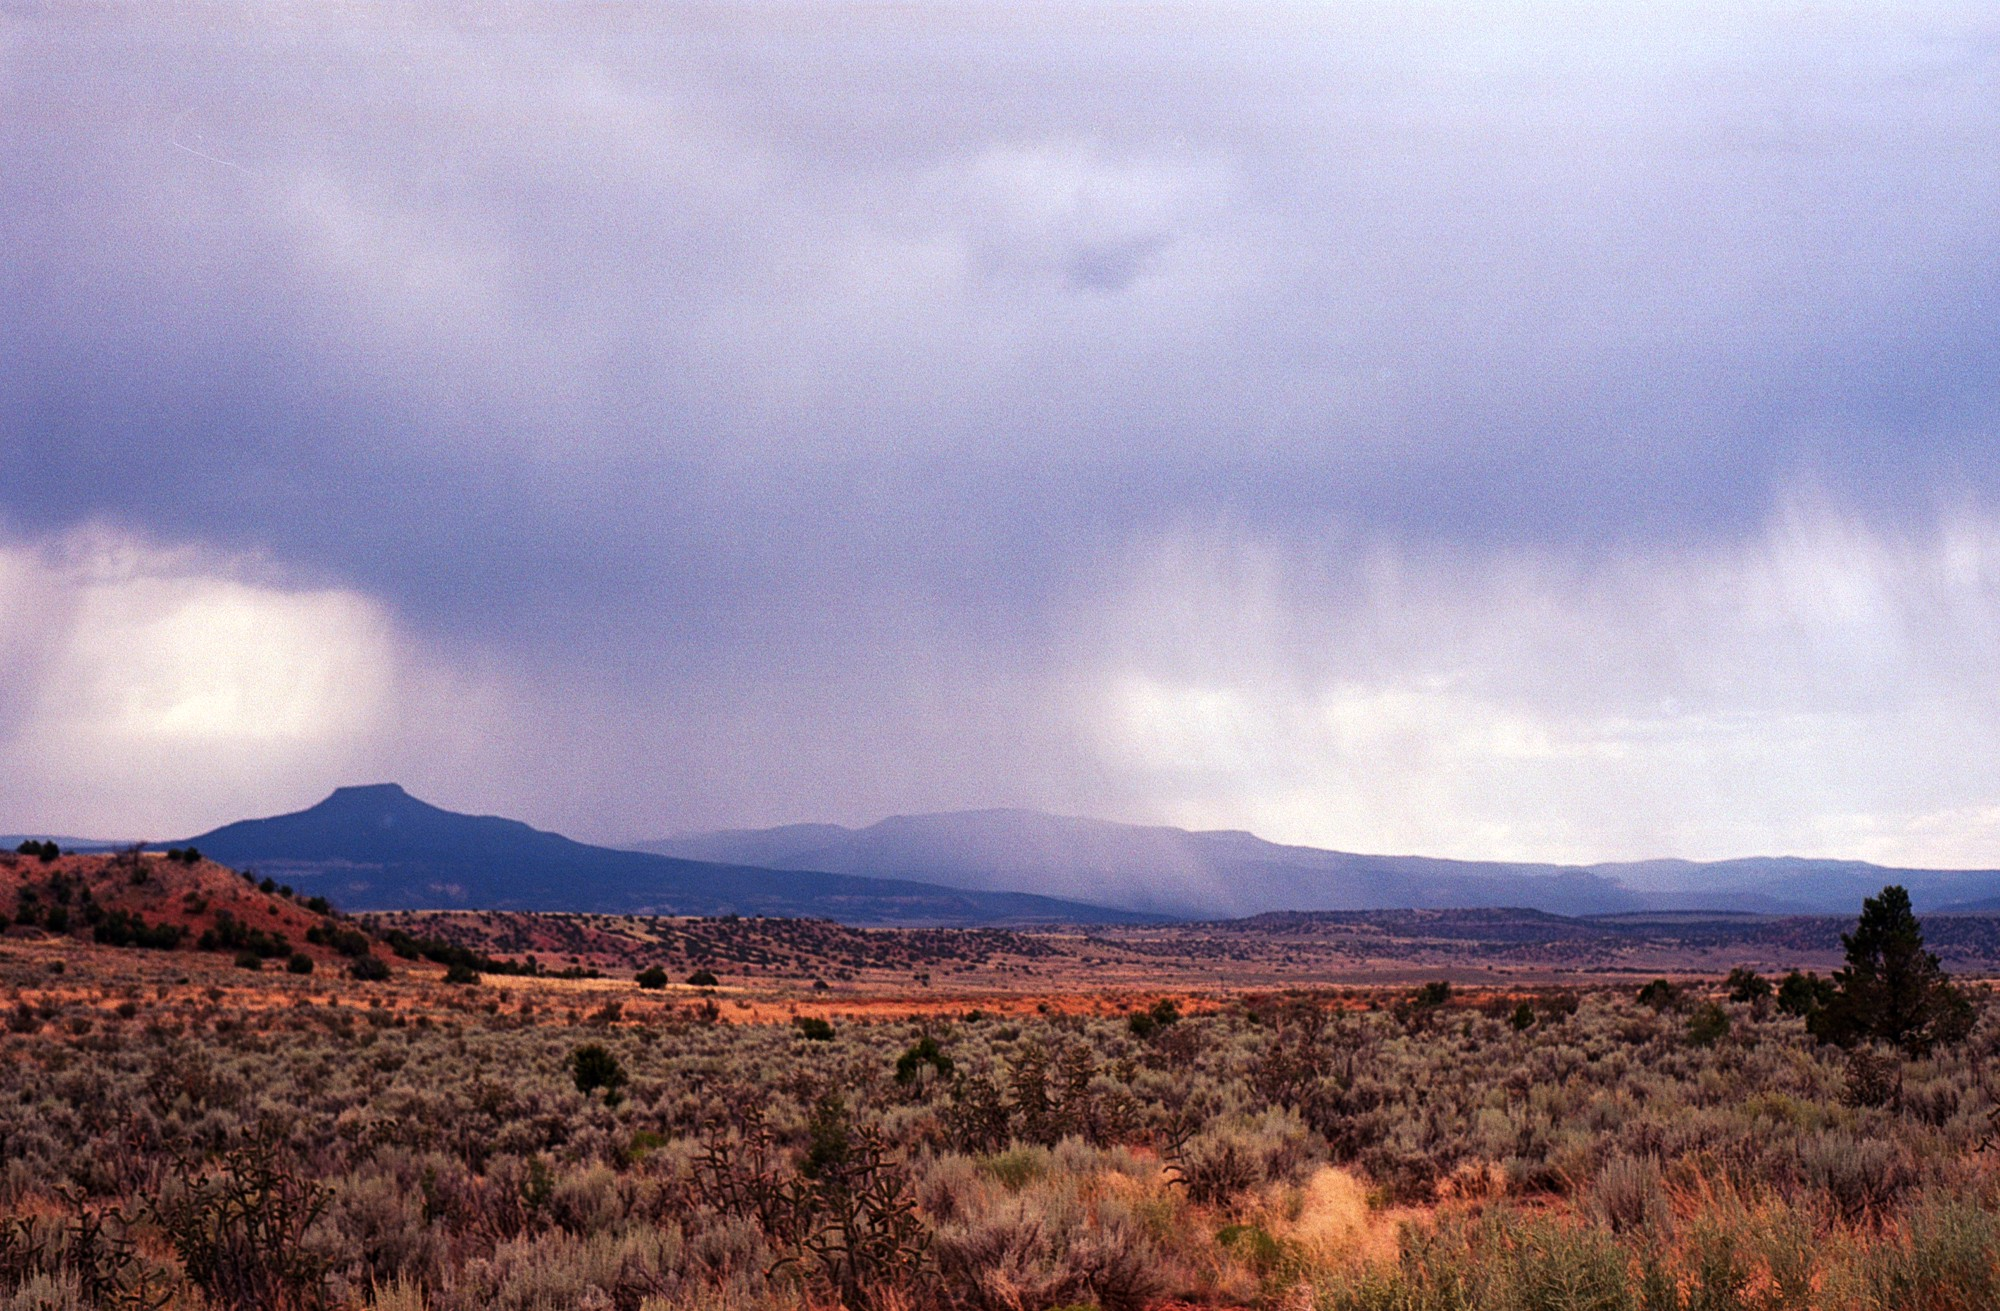 Color photograph of a rainstorm over the desert mesas in New Mexico, from a distance so you can see the whole patch of rain